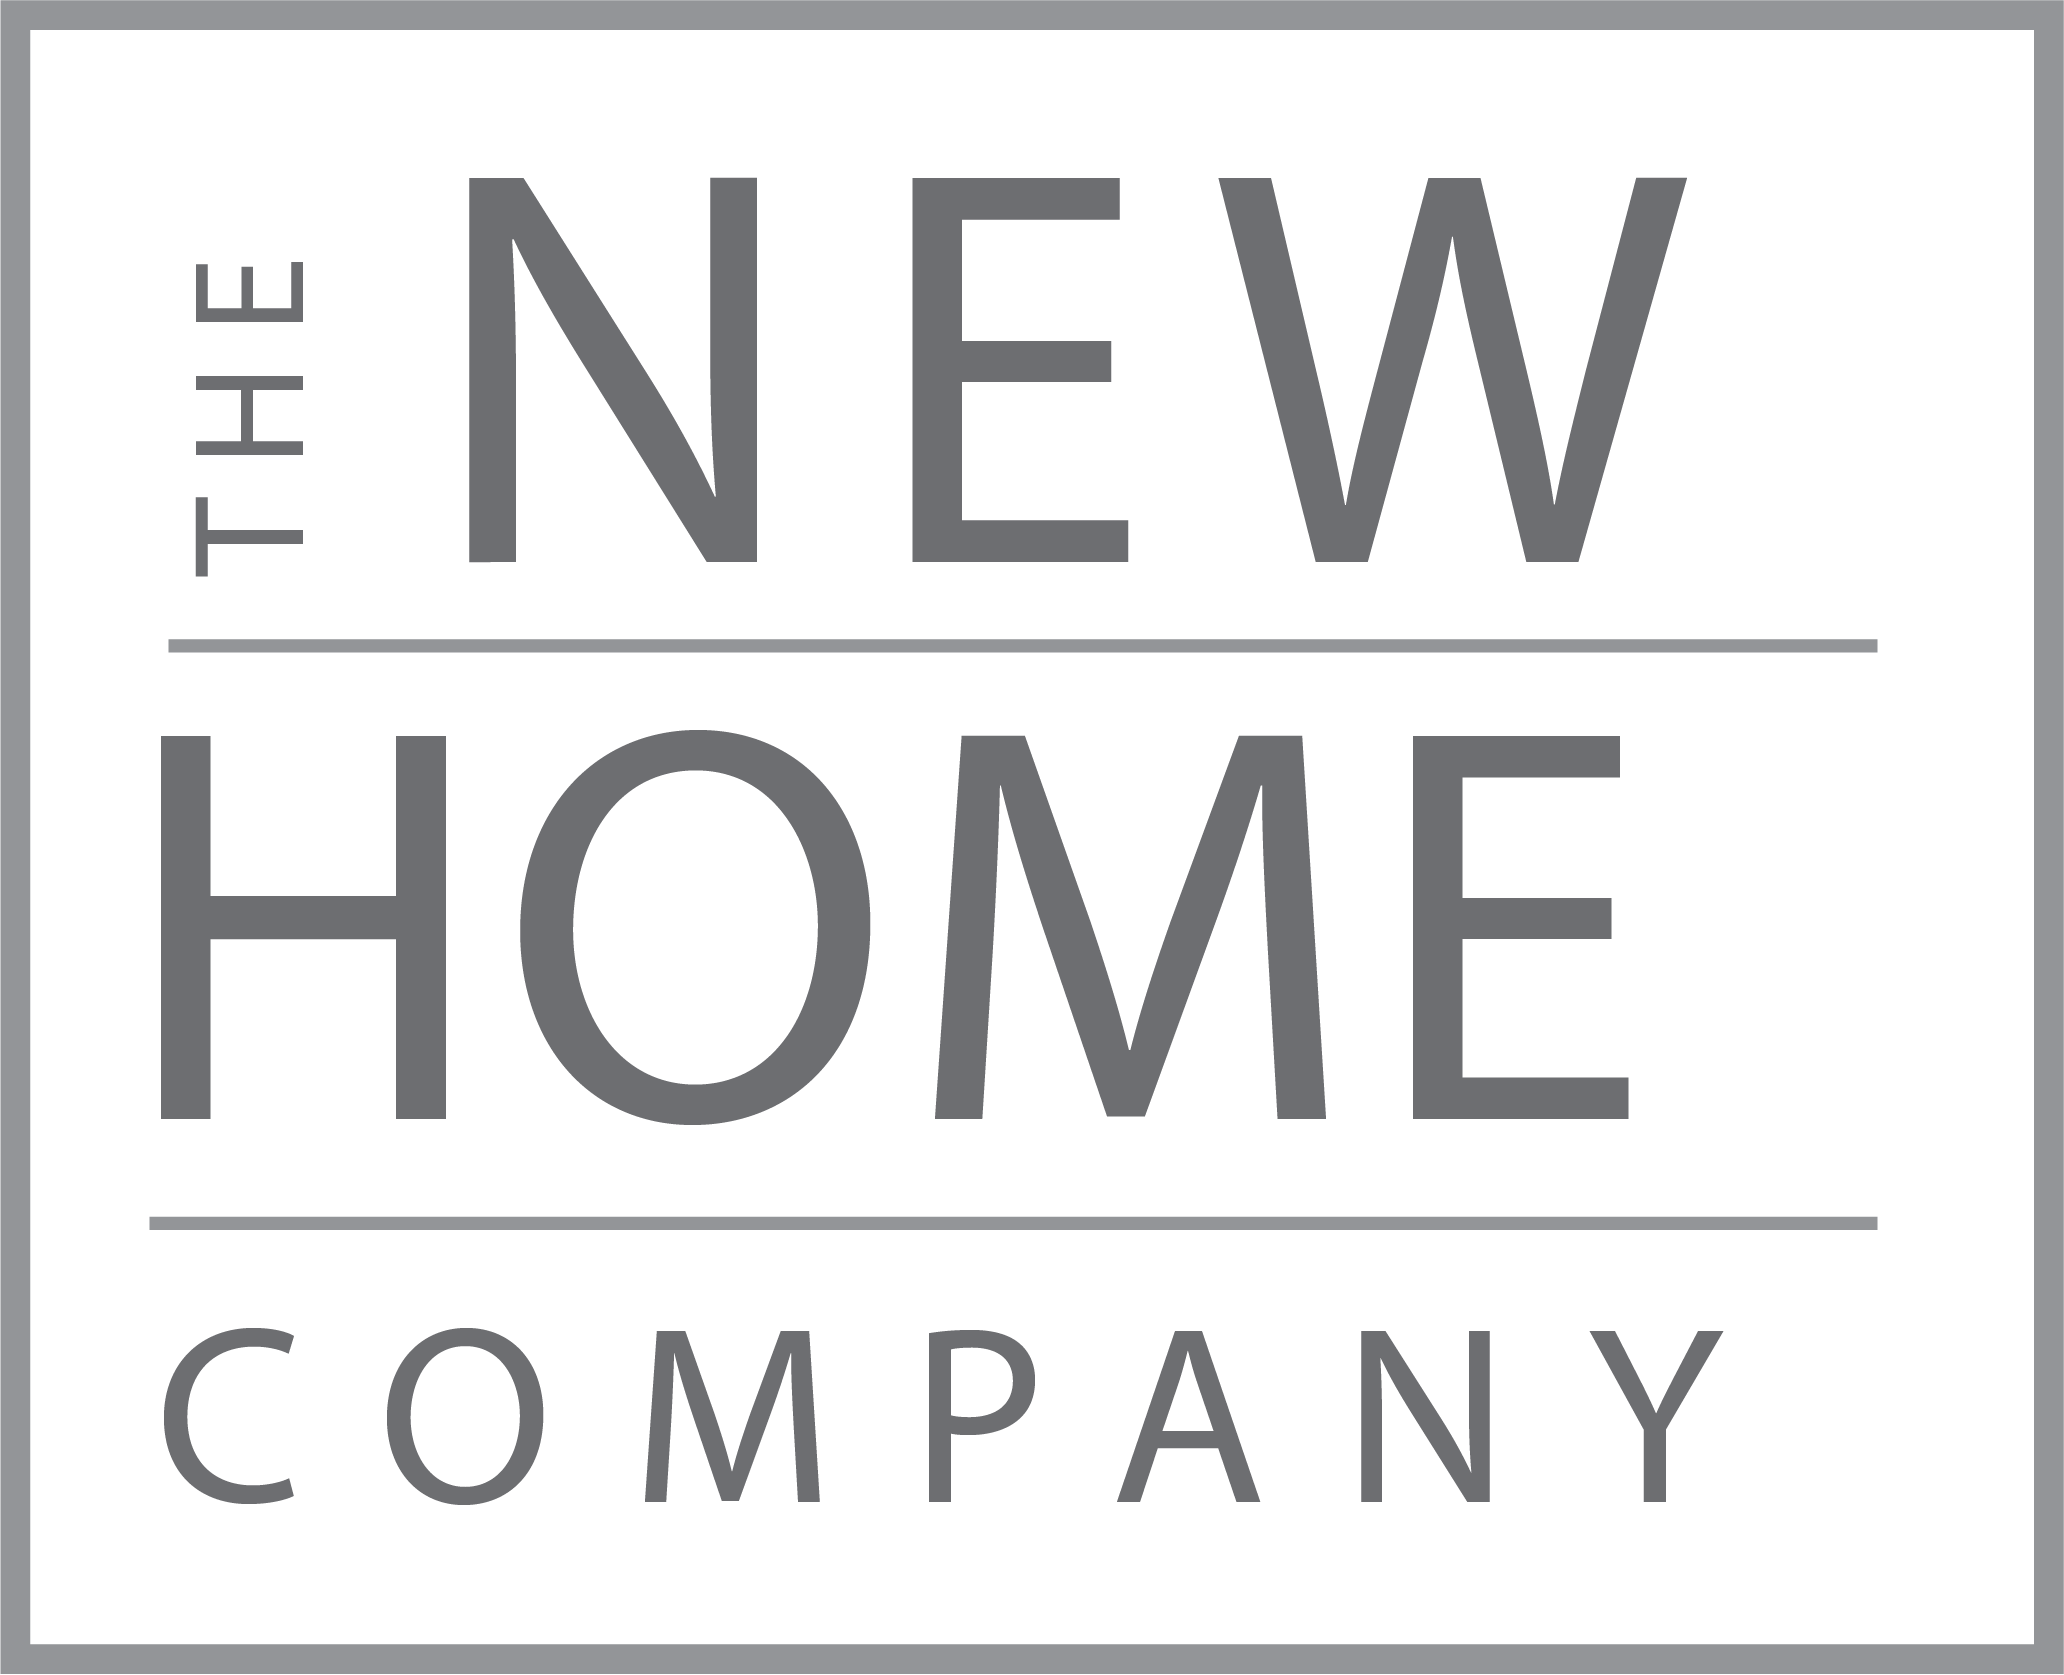 The New Home Company- Coming Soon